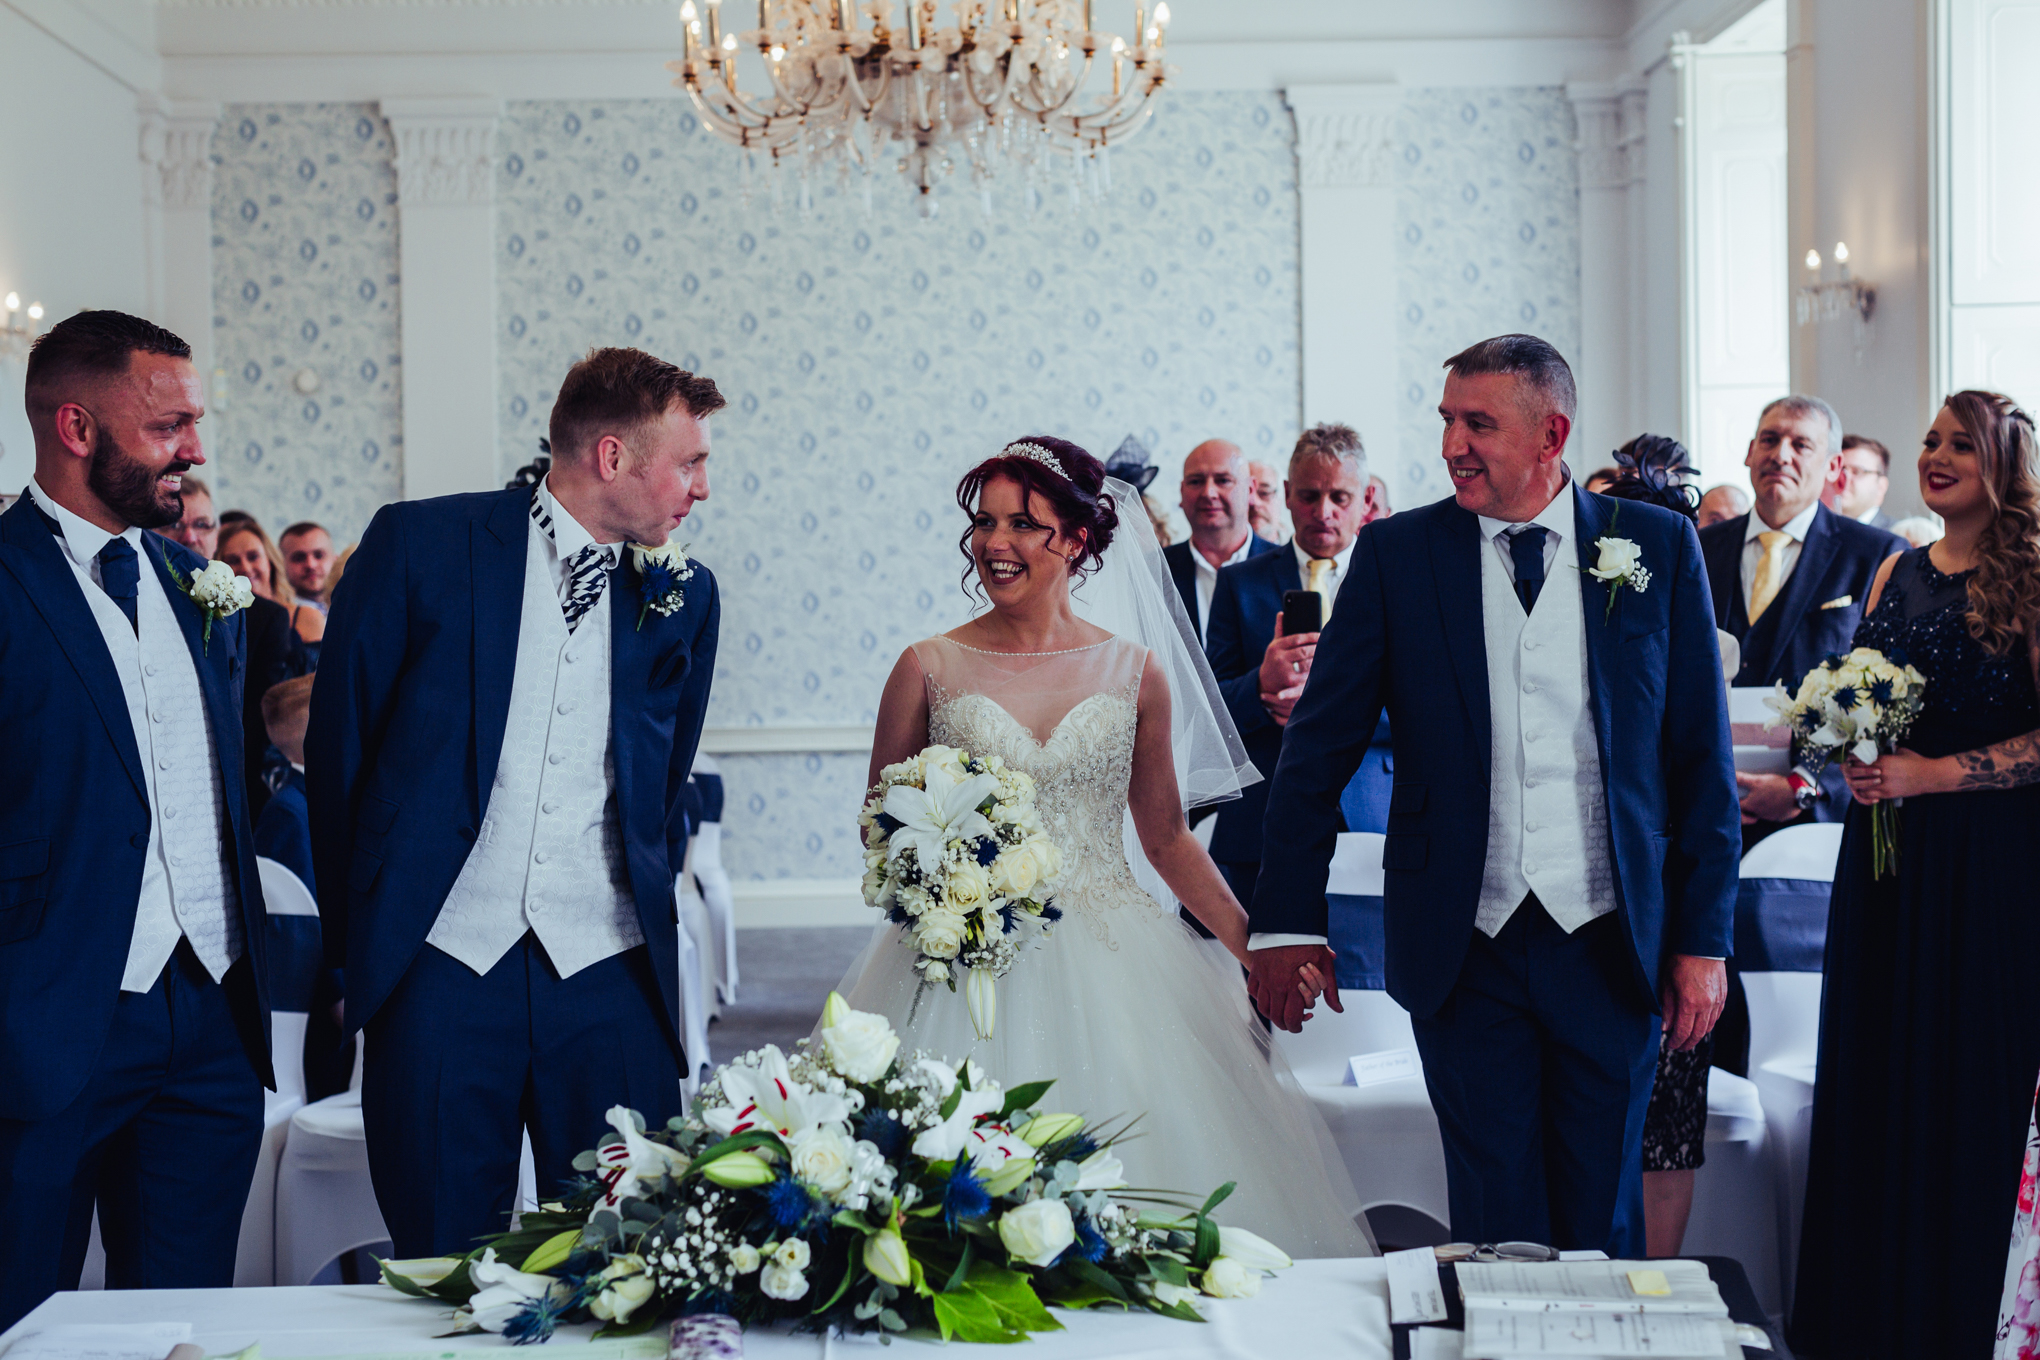 Himley Hall Wedding Photography Photographer ceremony